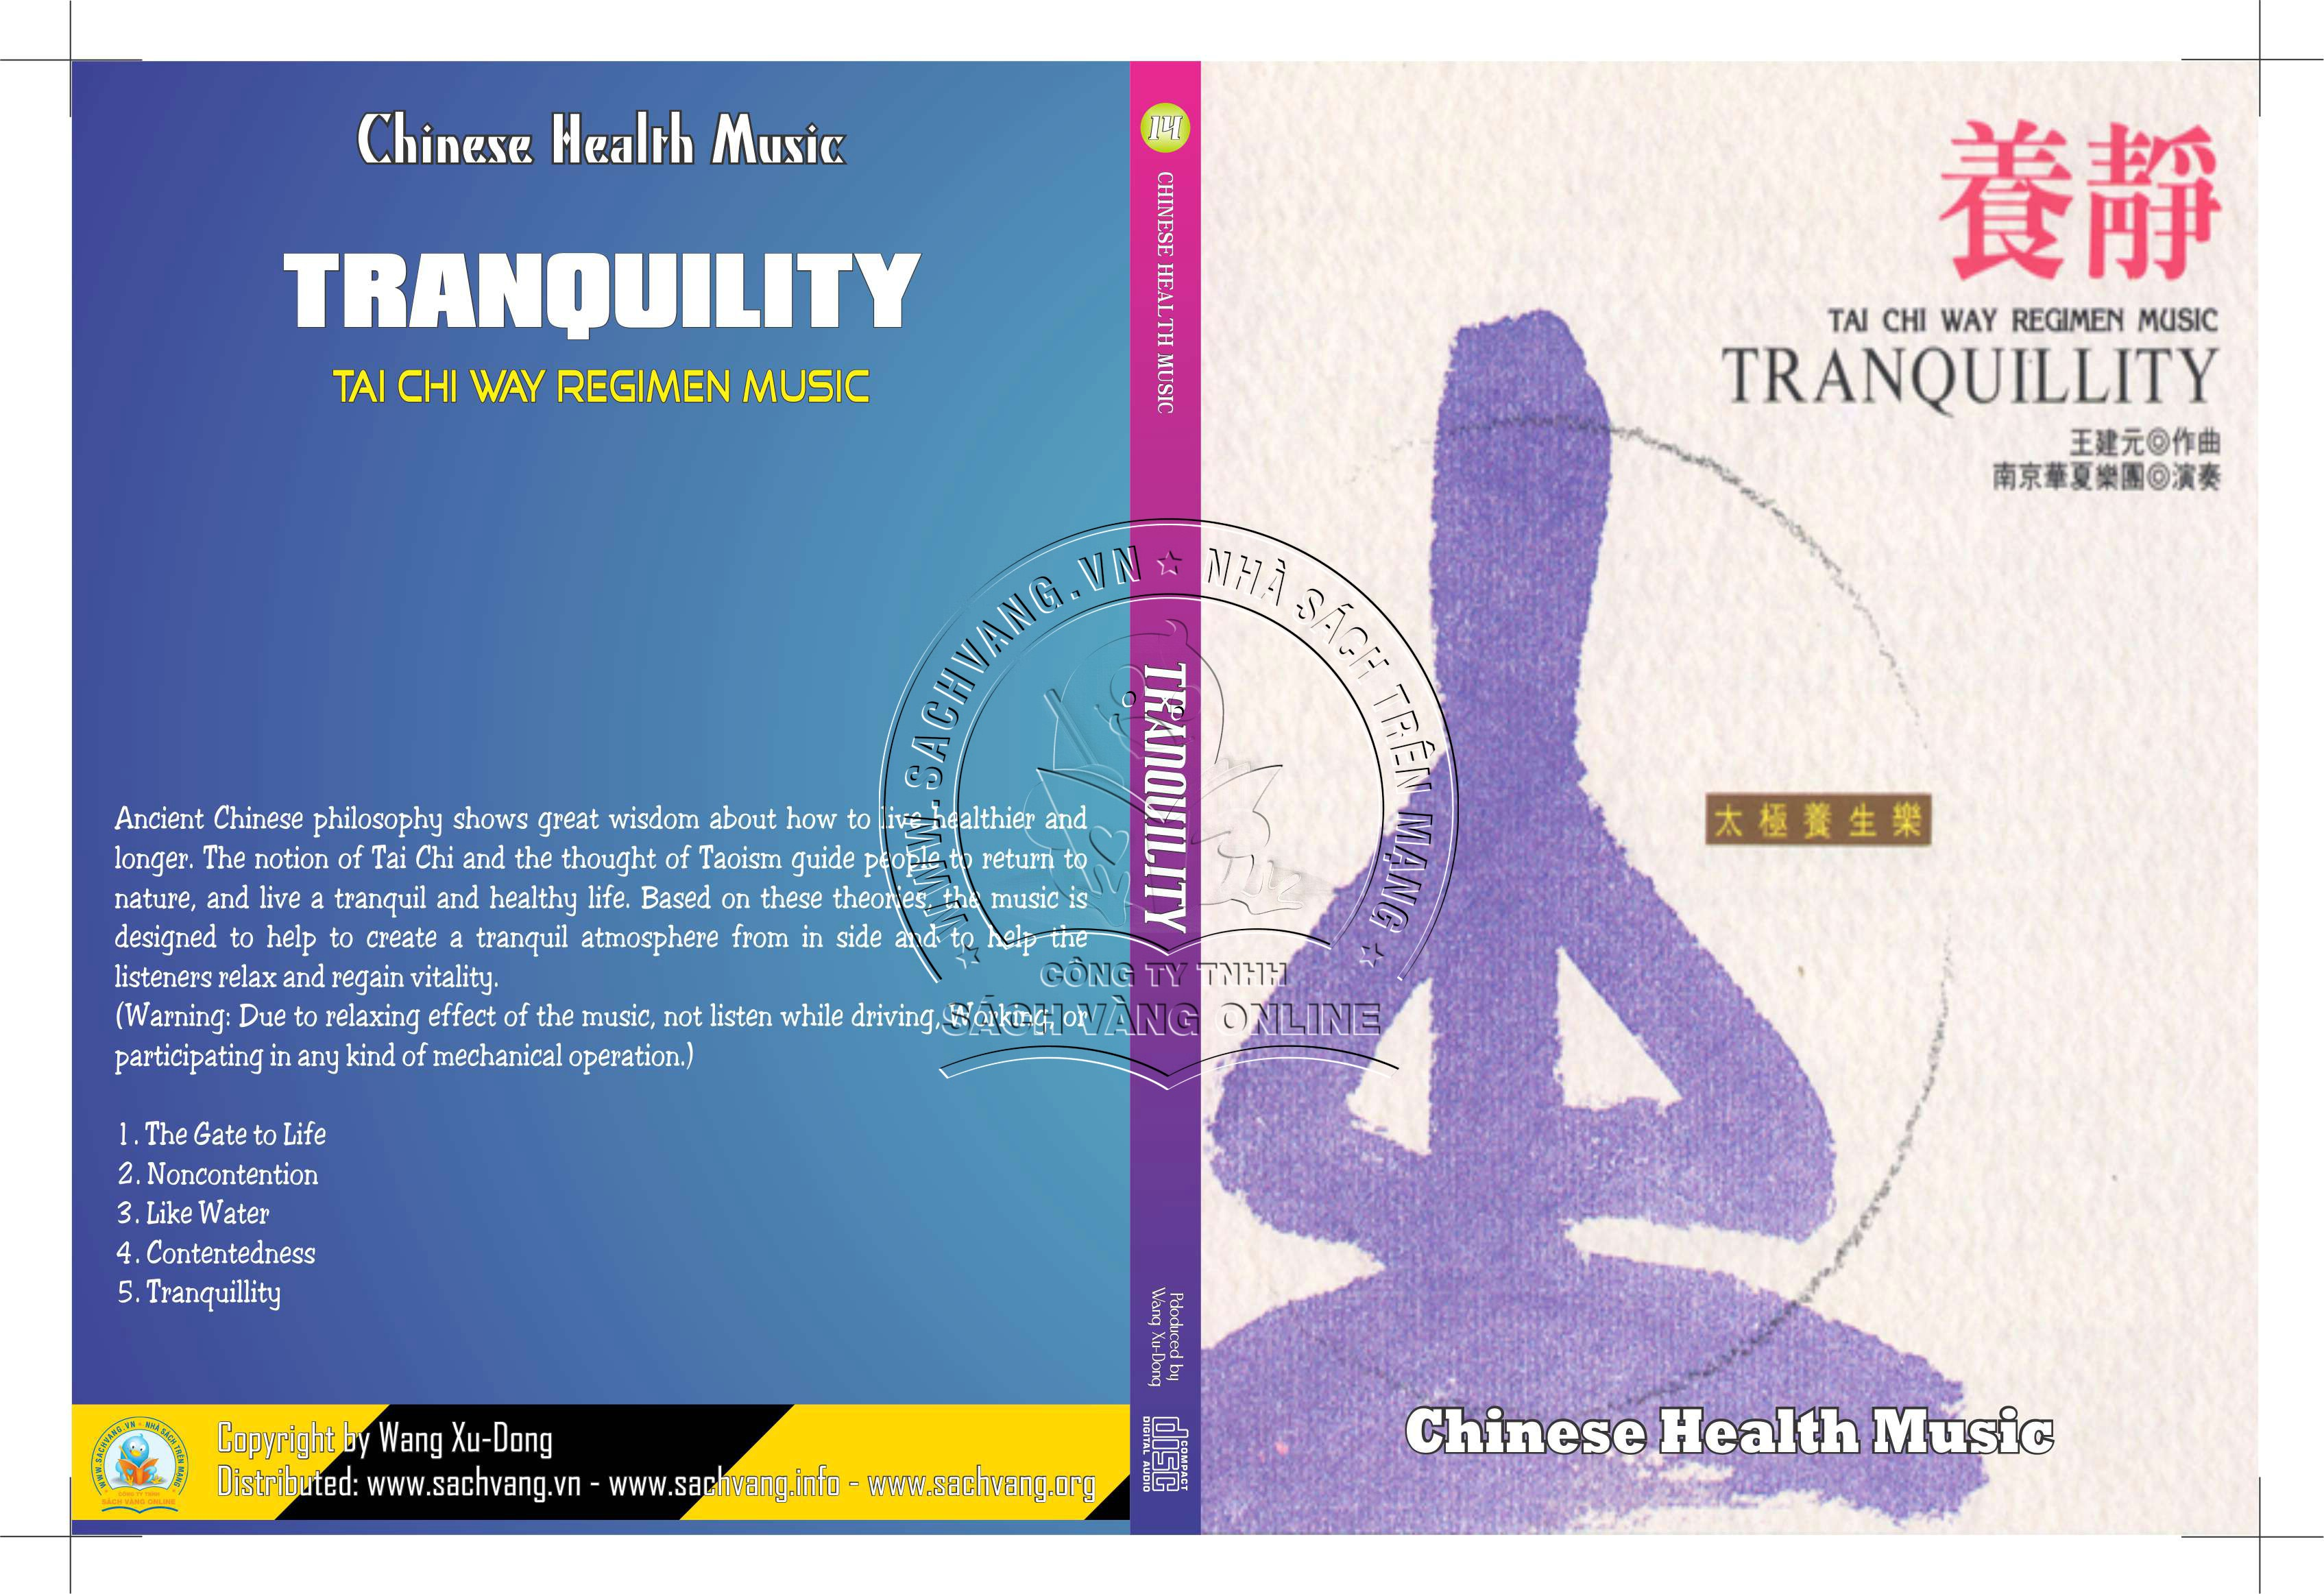 Chinese Health Music - 14 - Tranquility